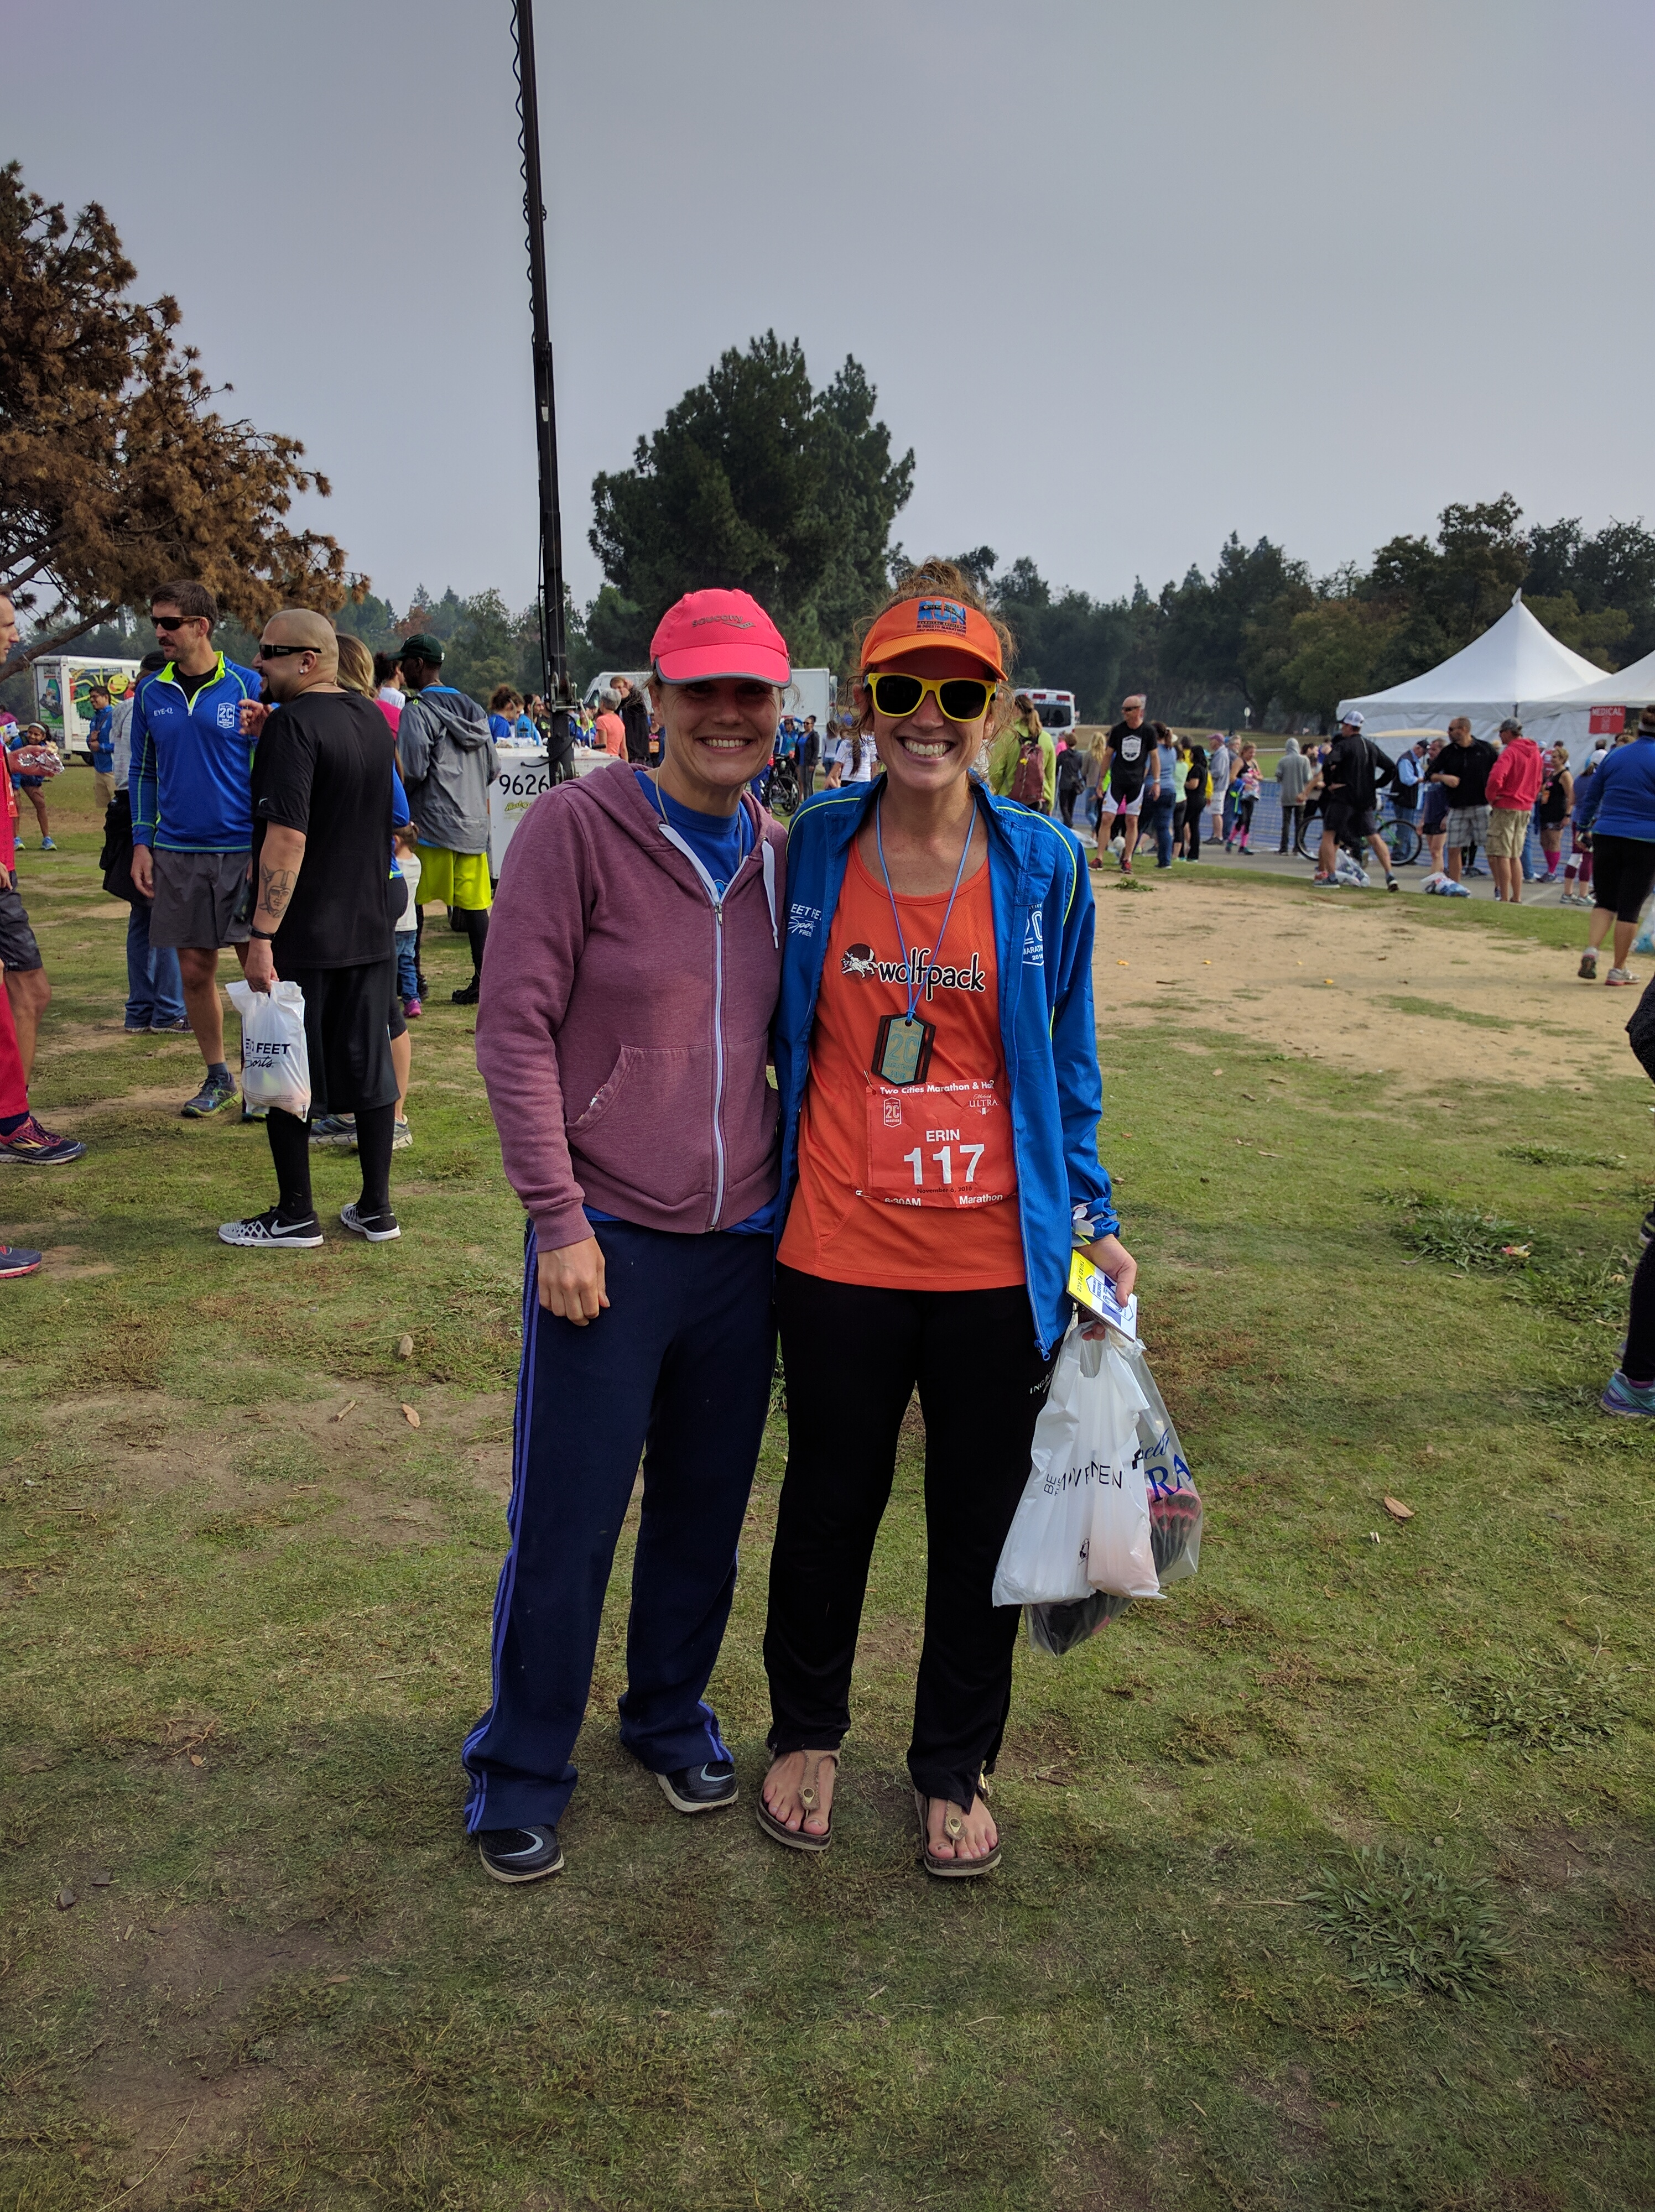 with Meredith, and I wasted no time in putting on comfy pants (my throwback ING NYCM pants!) and Birkenstocks (the jacket I'm wearing is the finisher's jacket for the marathoners)